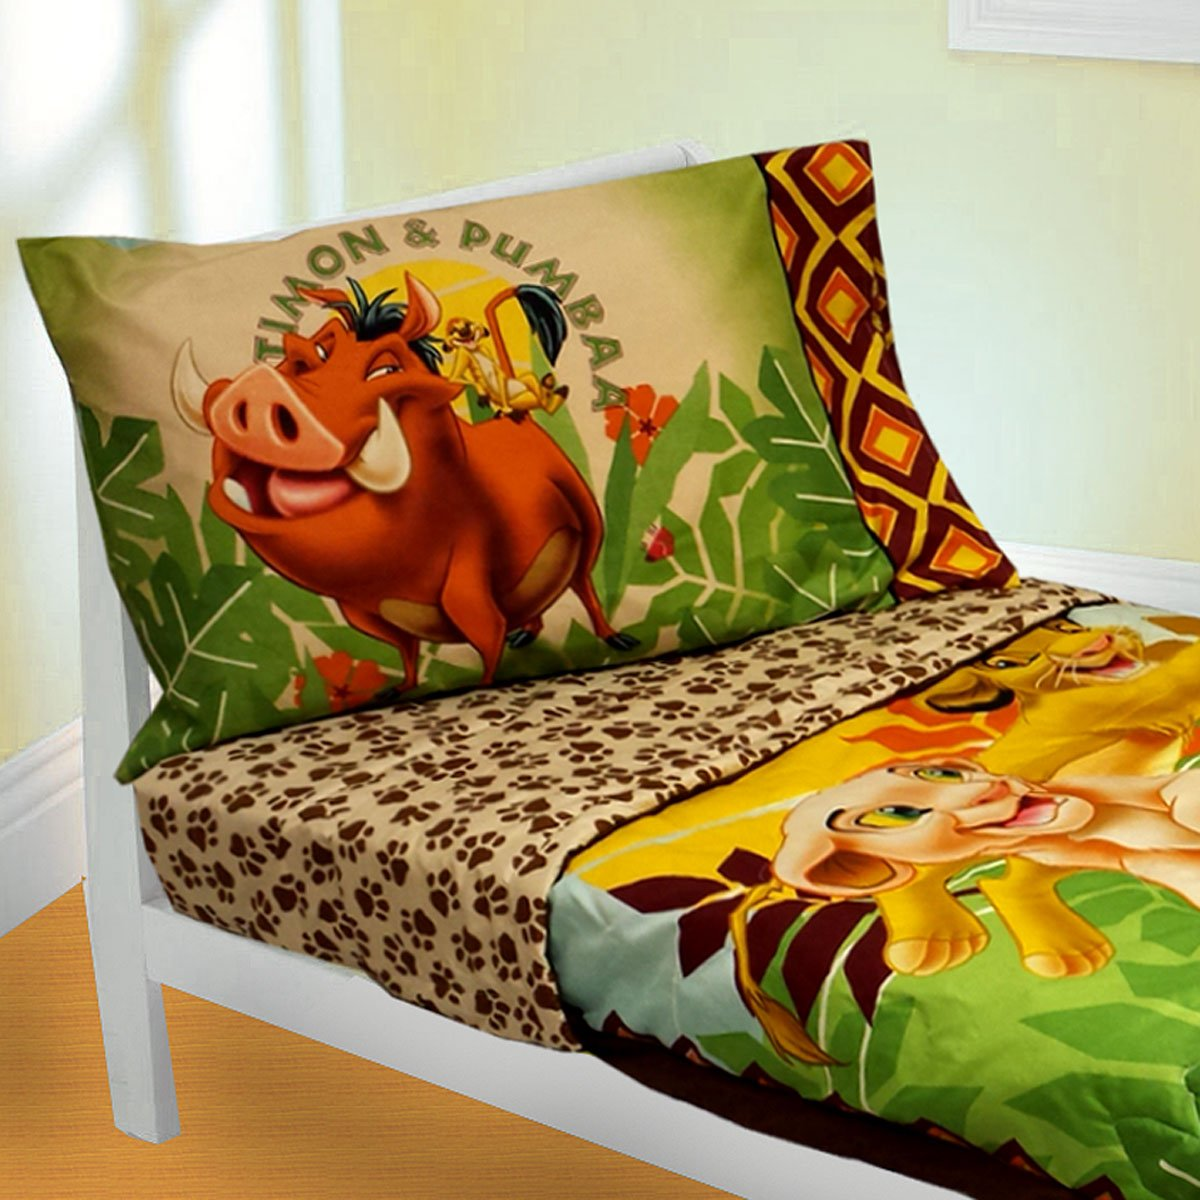 amazoncom disney lion king 4 piece toddler bedding set jungle theme bedding baby